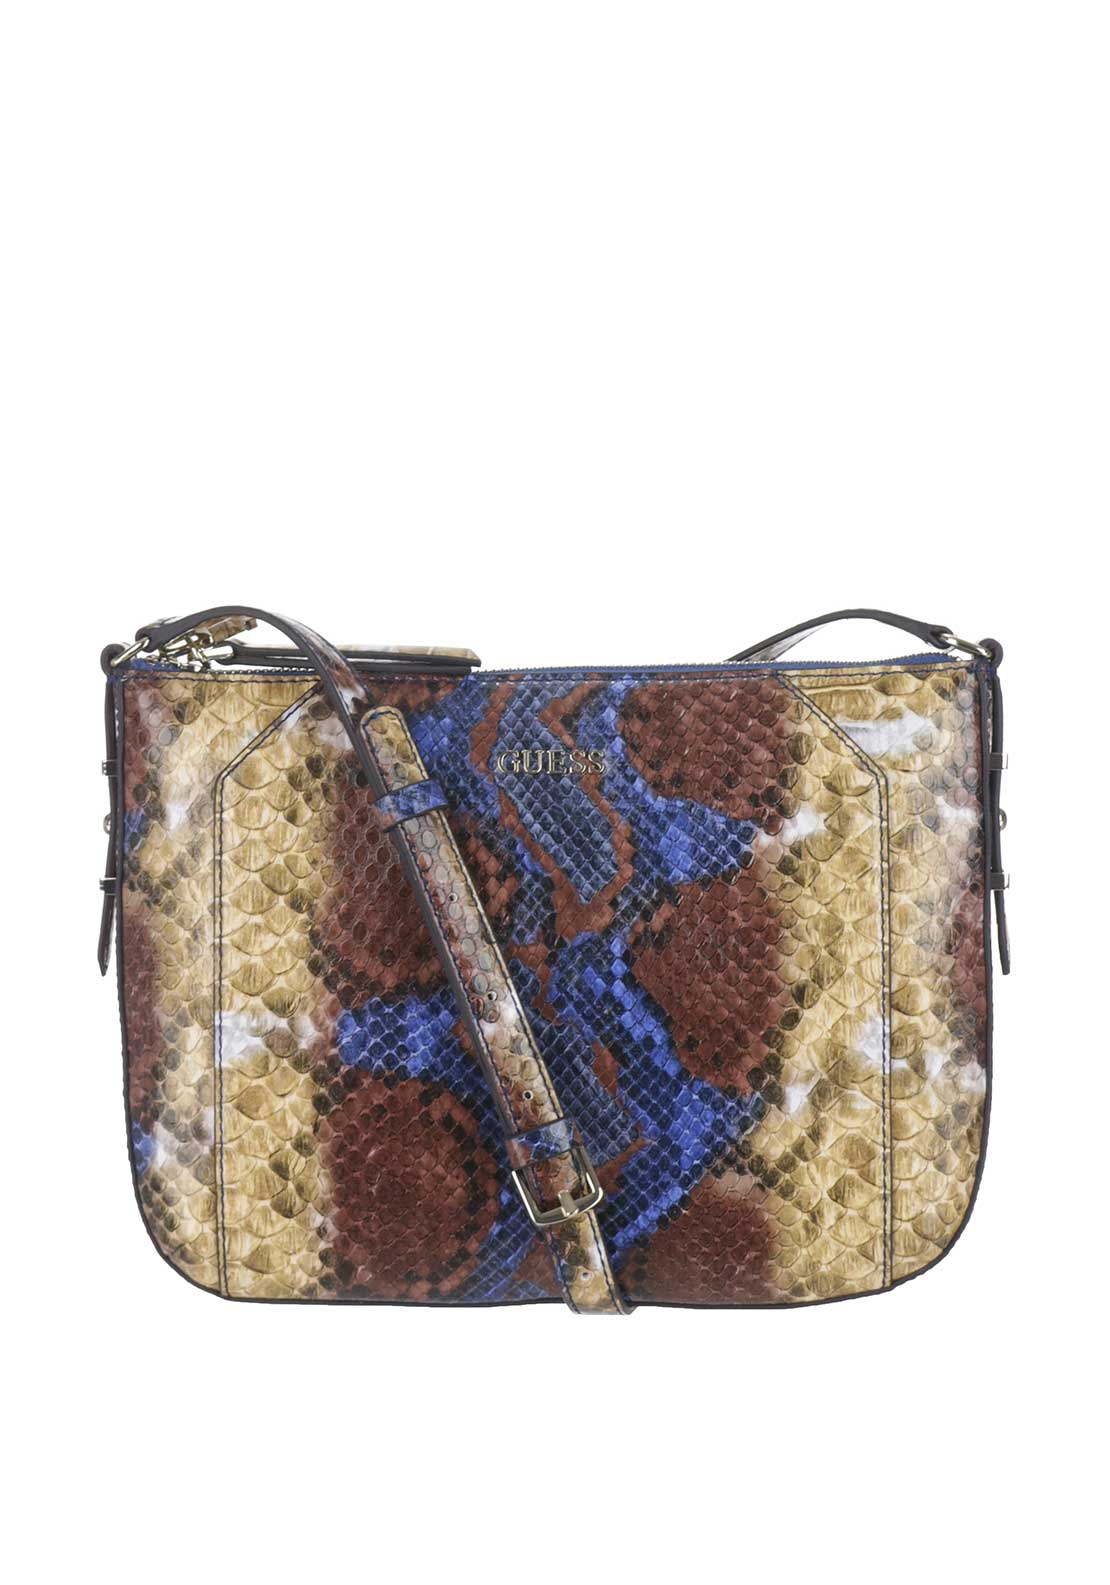 Guess Gia Phyton Print Crossbody Bag, Phyton